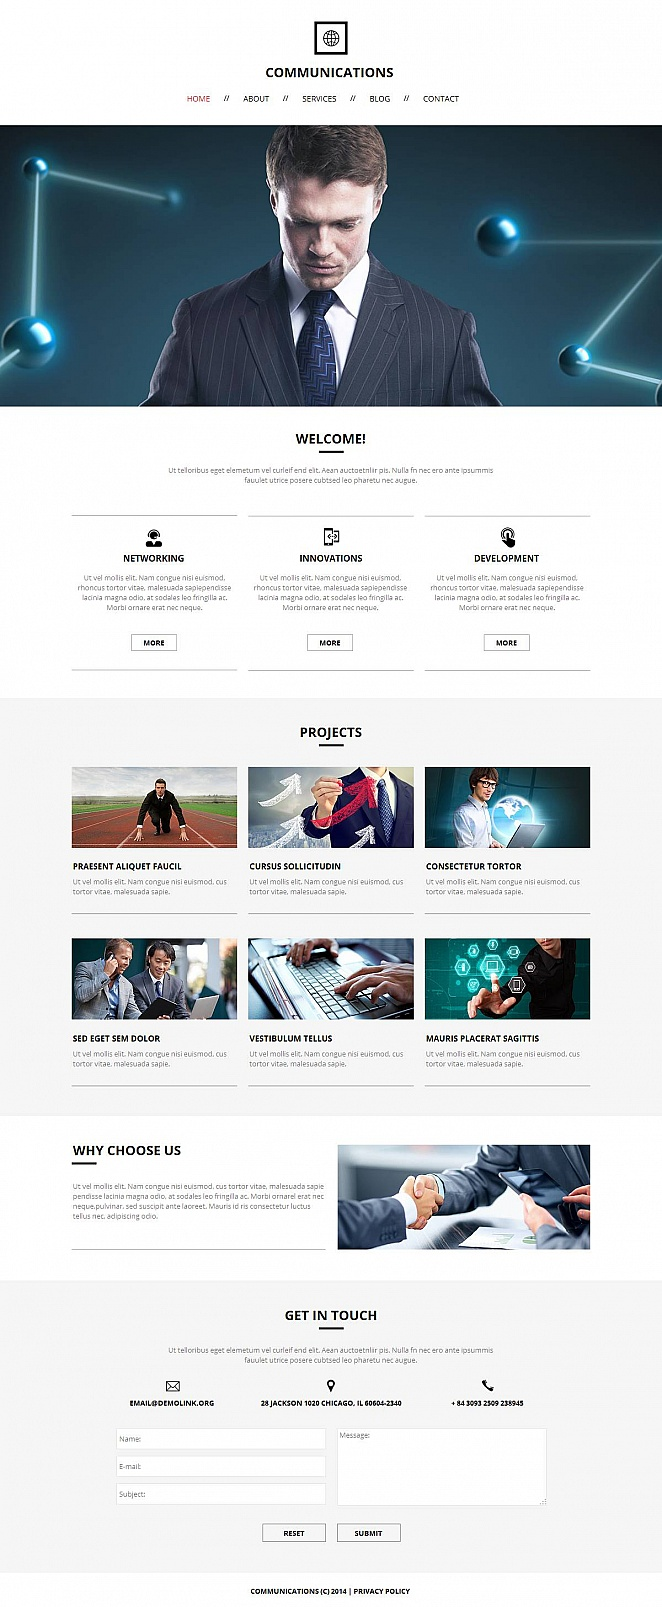 Minimalist Website Template for Communication Business Services - image